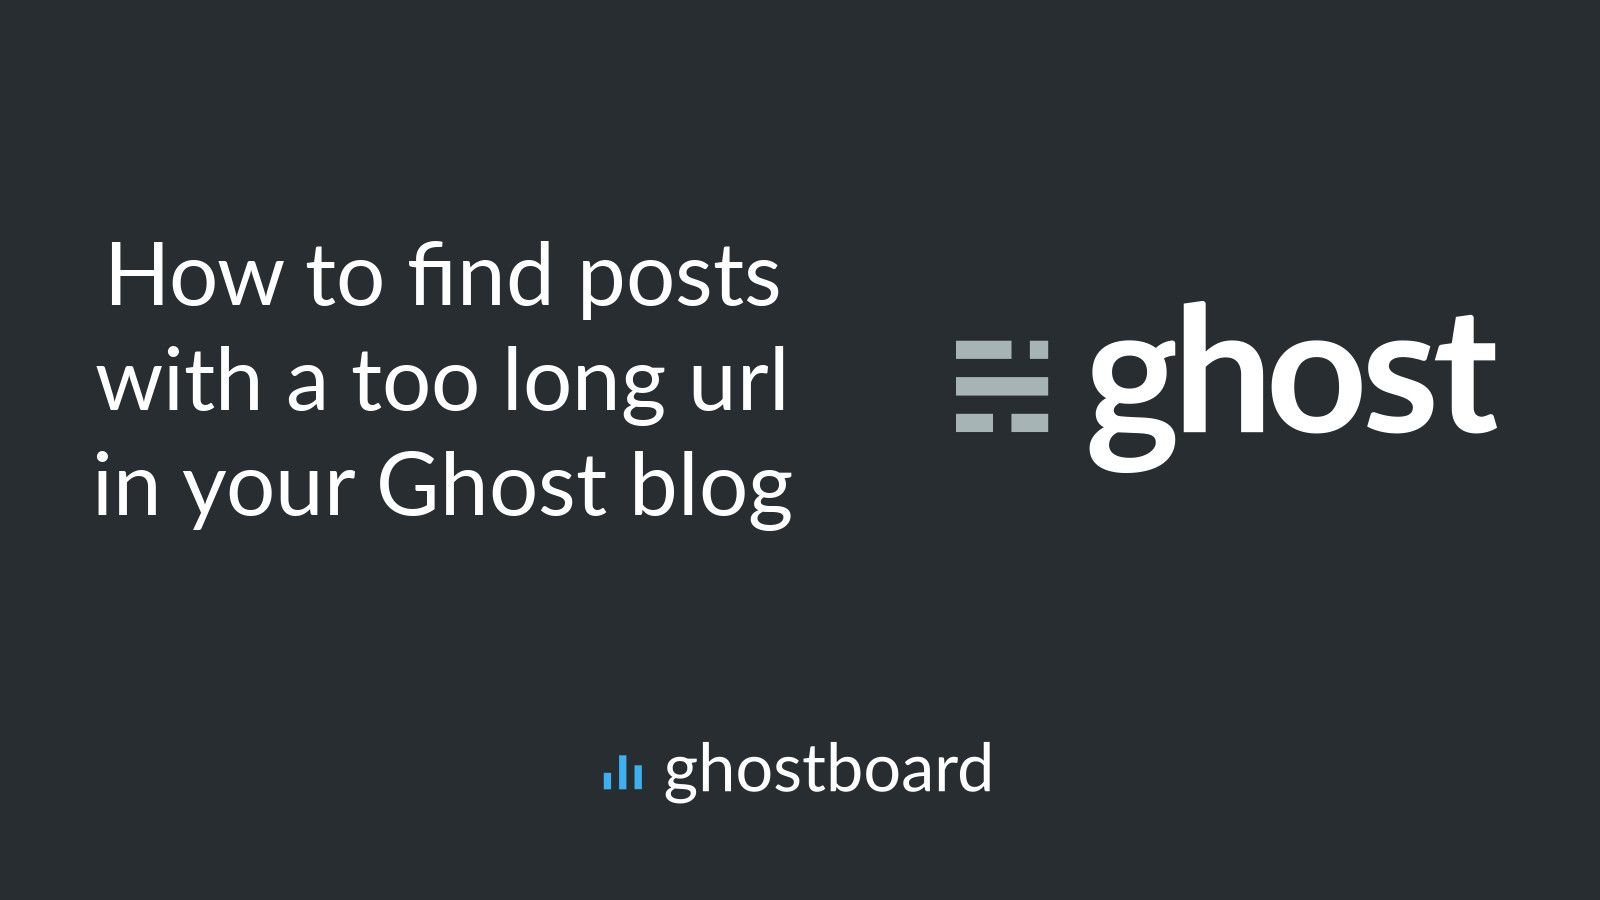 How to find posts with a too long url